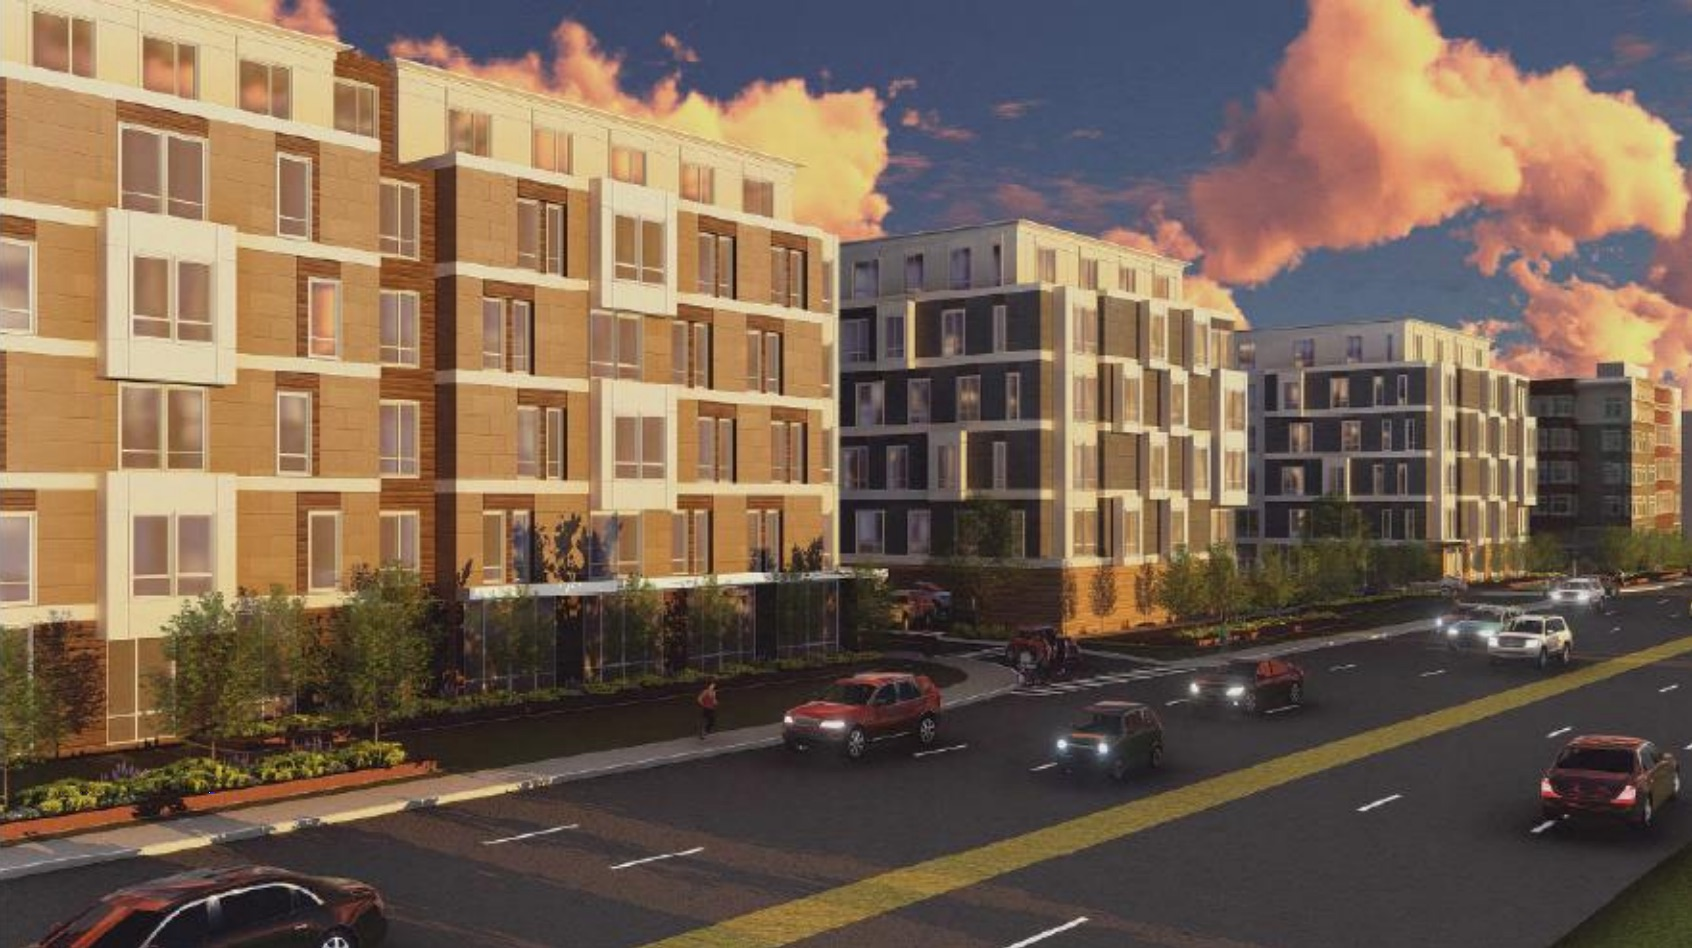 The residences at alewife station criterion development partners bsc group icon architecture rendering